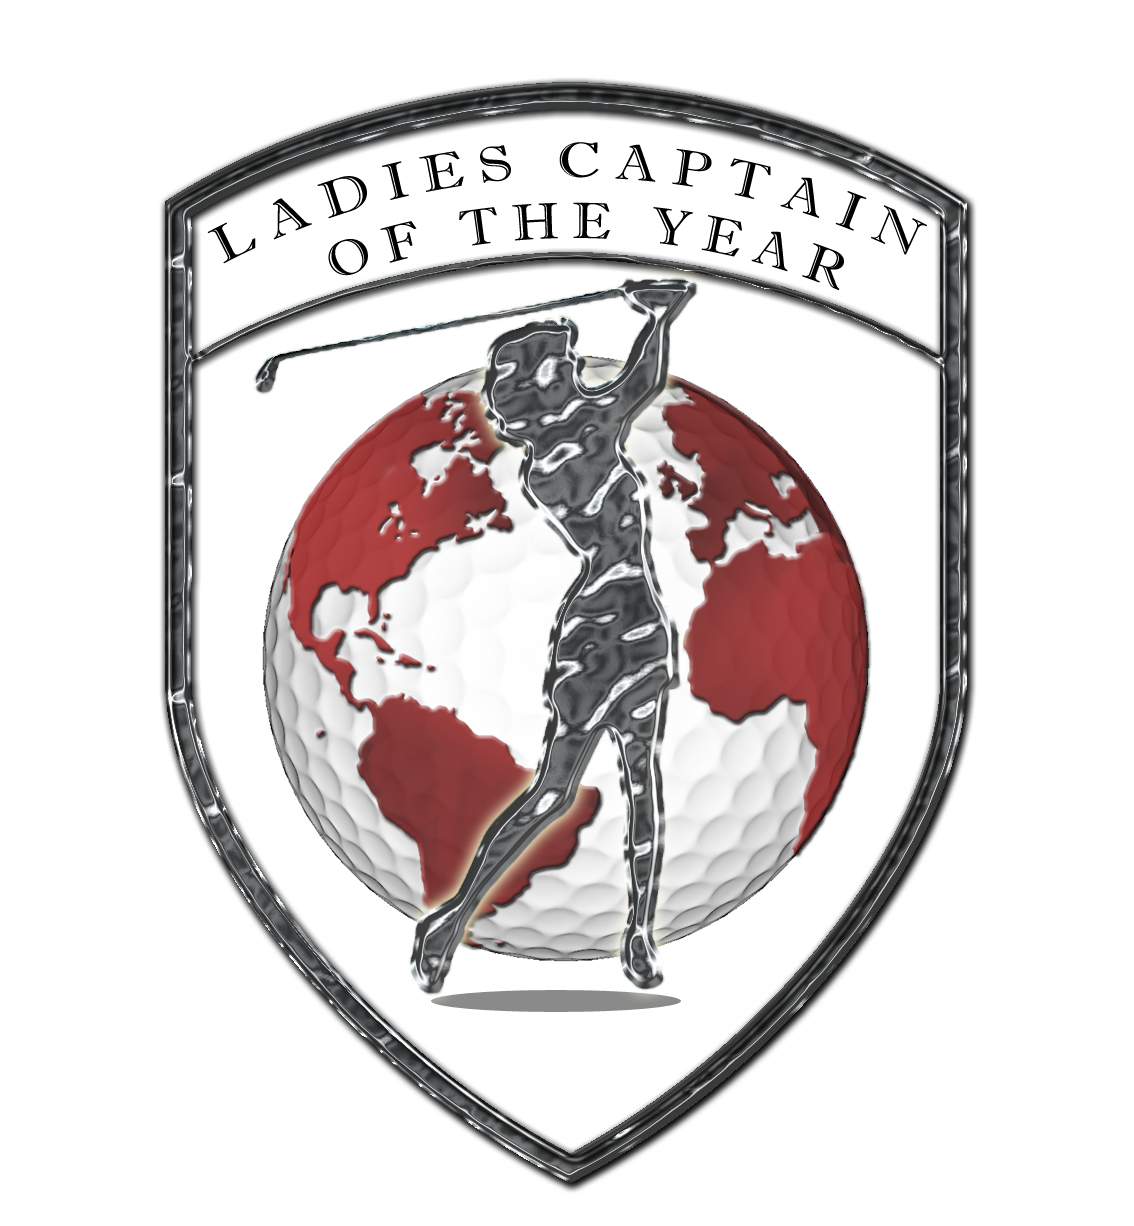 Ladies Captains of the Year 2018